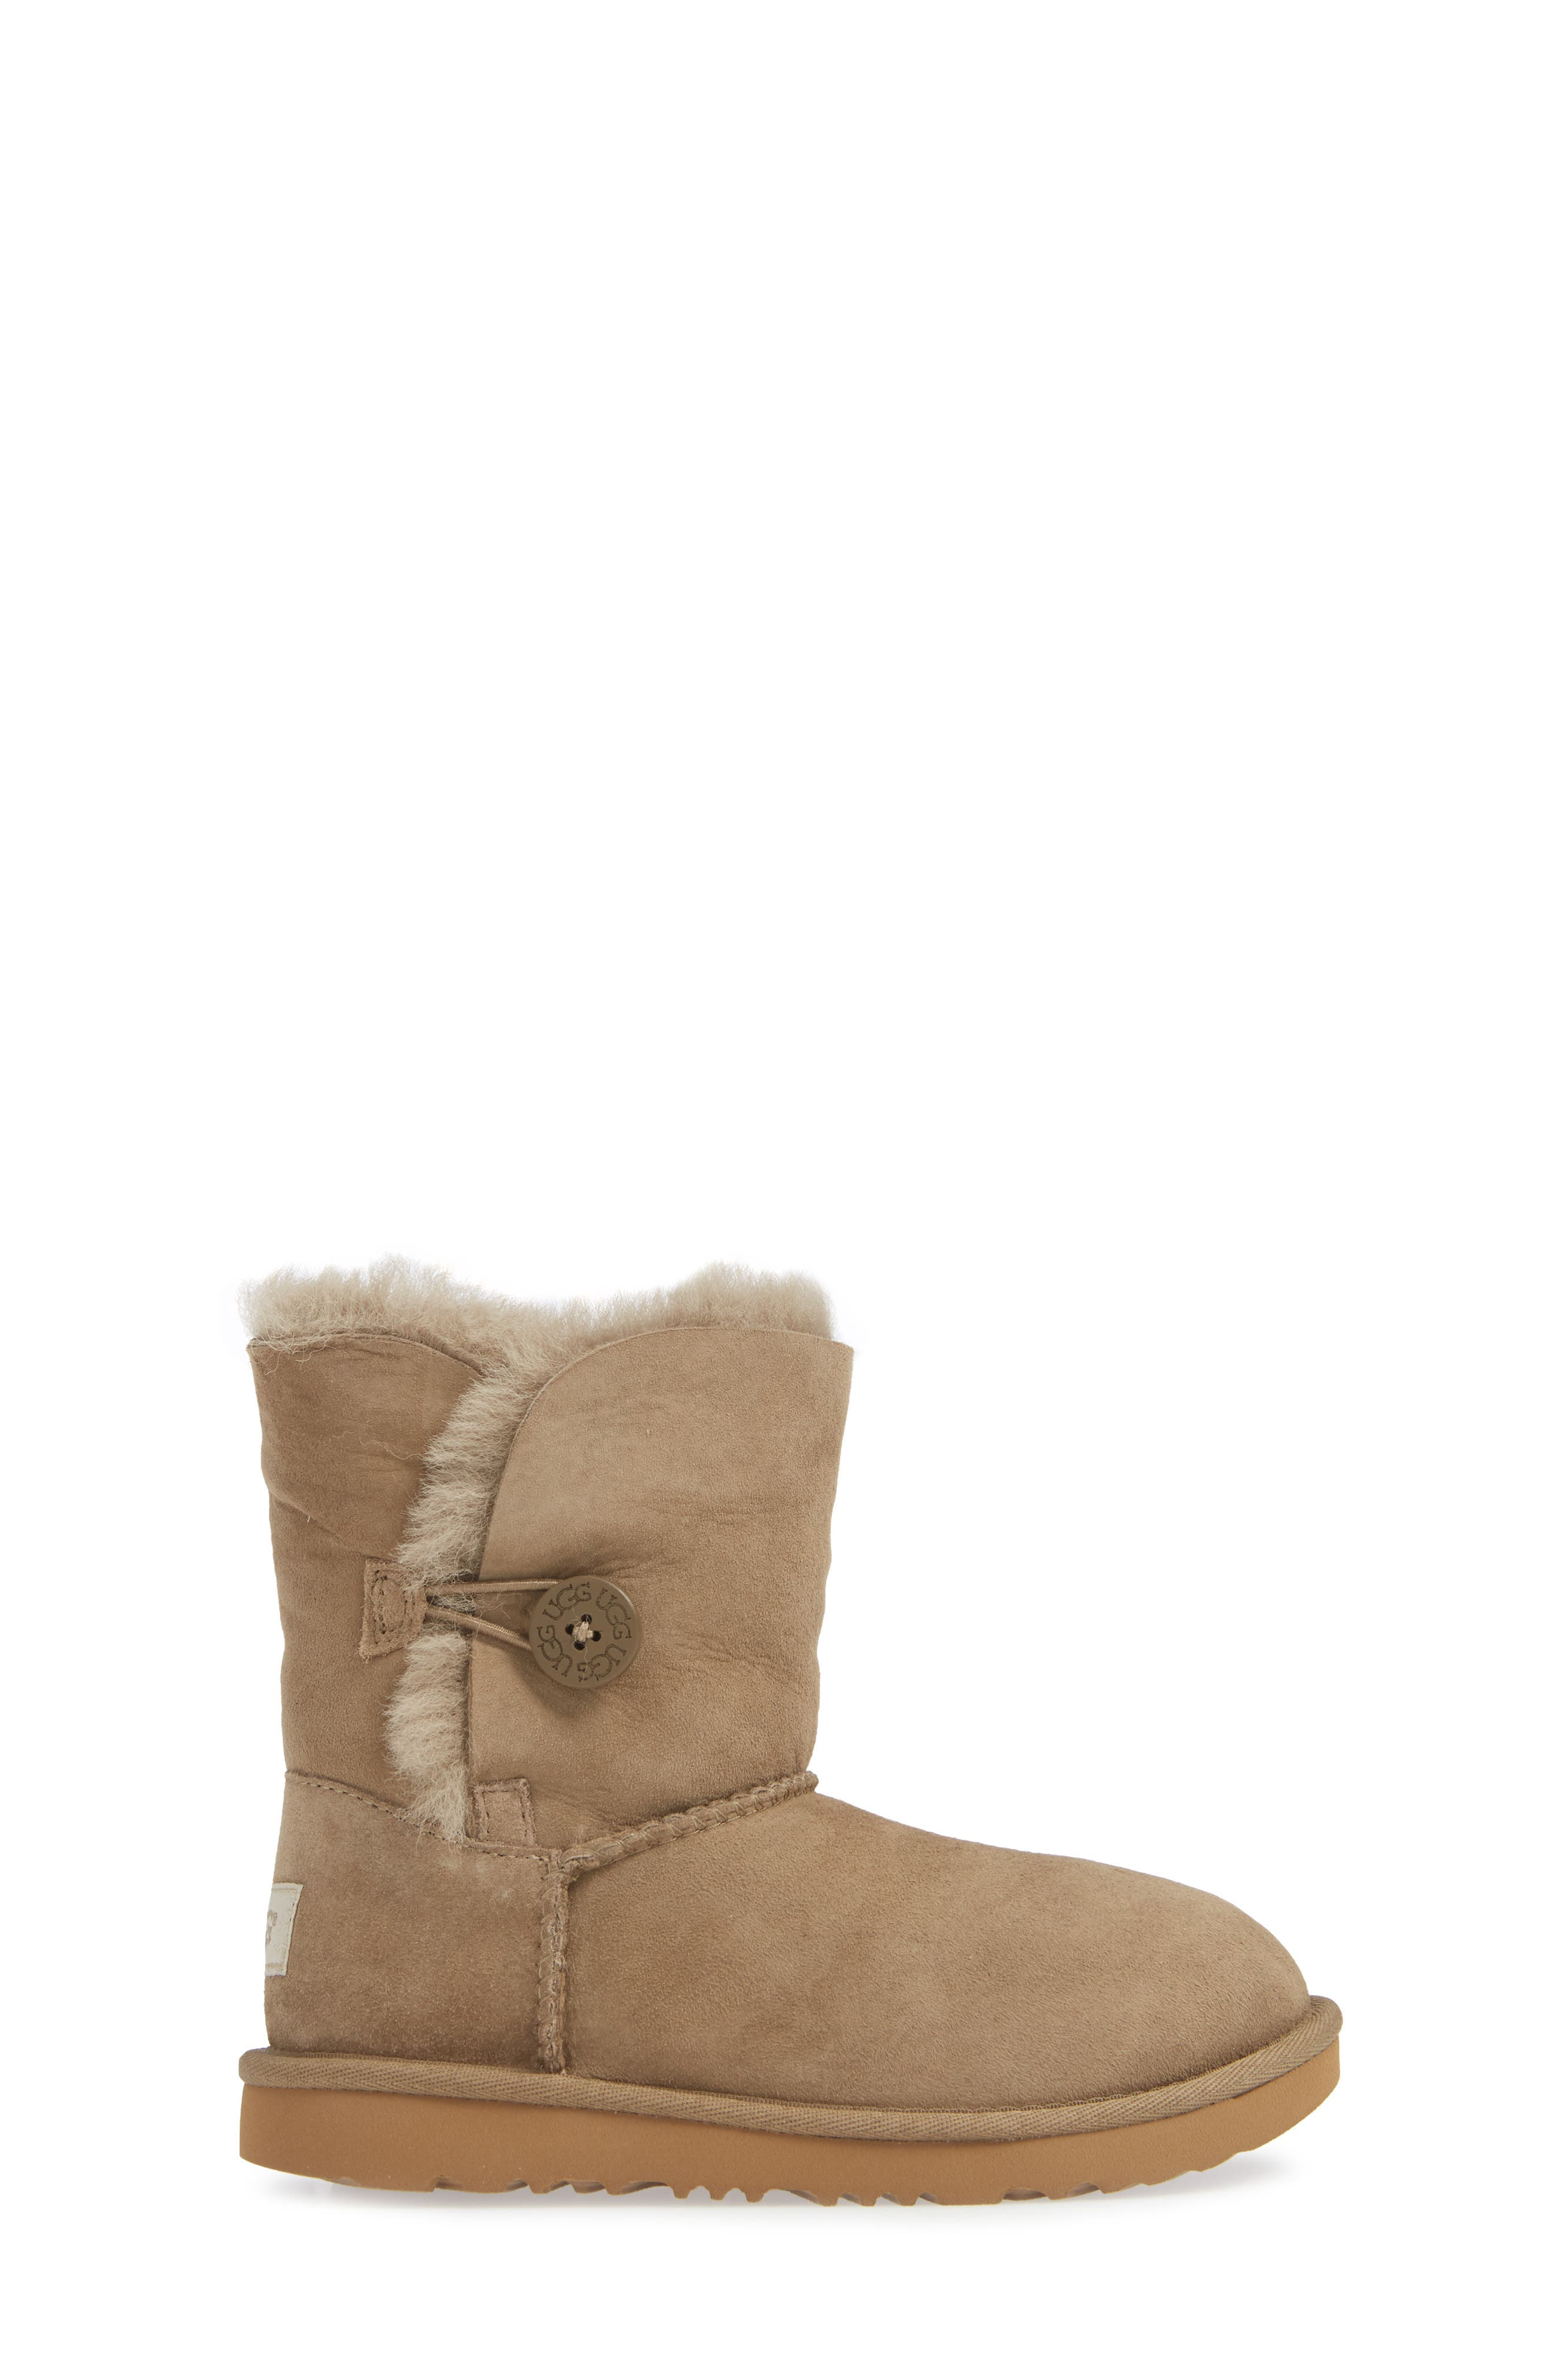 Bailey Button II Water Resistant Genuine Shearling Boot,                             Alternate thumbnail 3, color,                             ANTELOPE